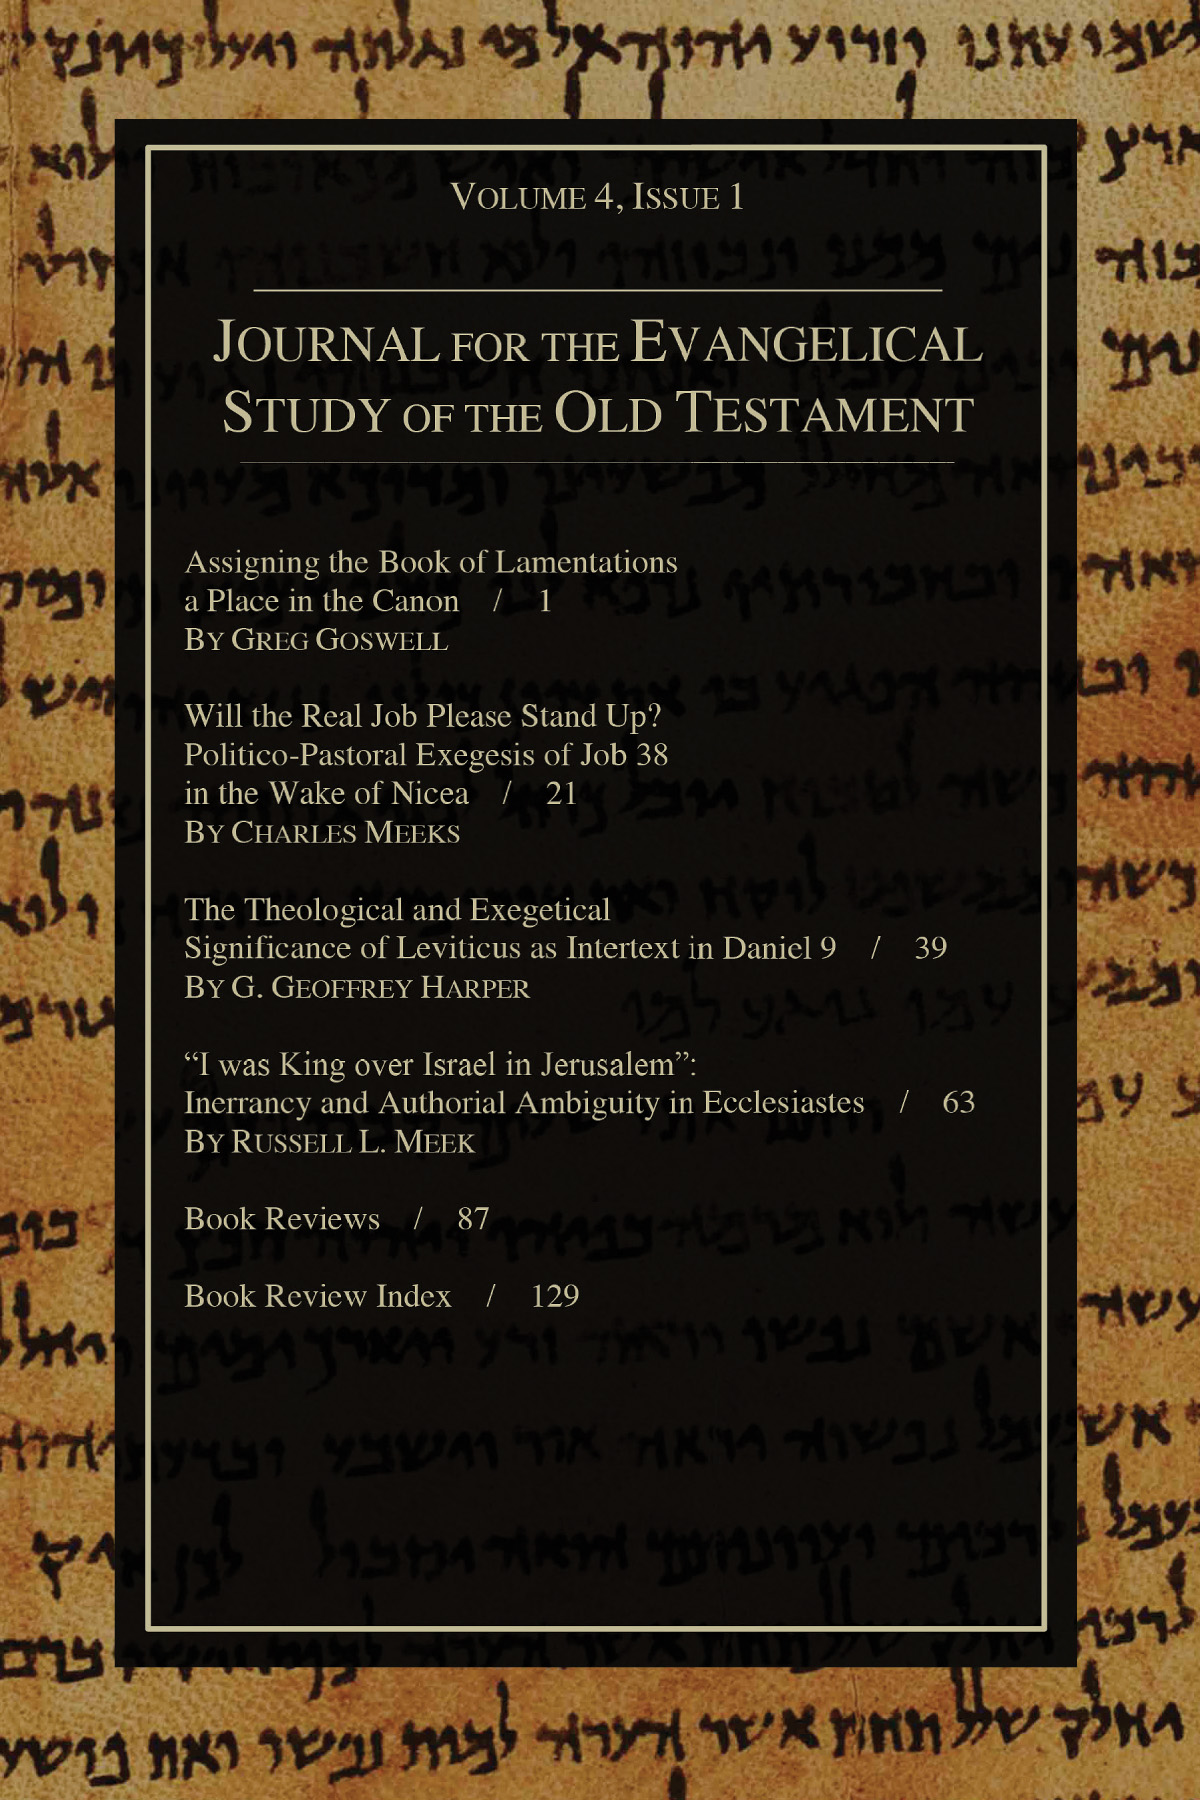 a literary analysis of the old testament